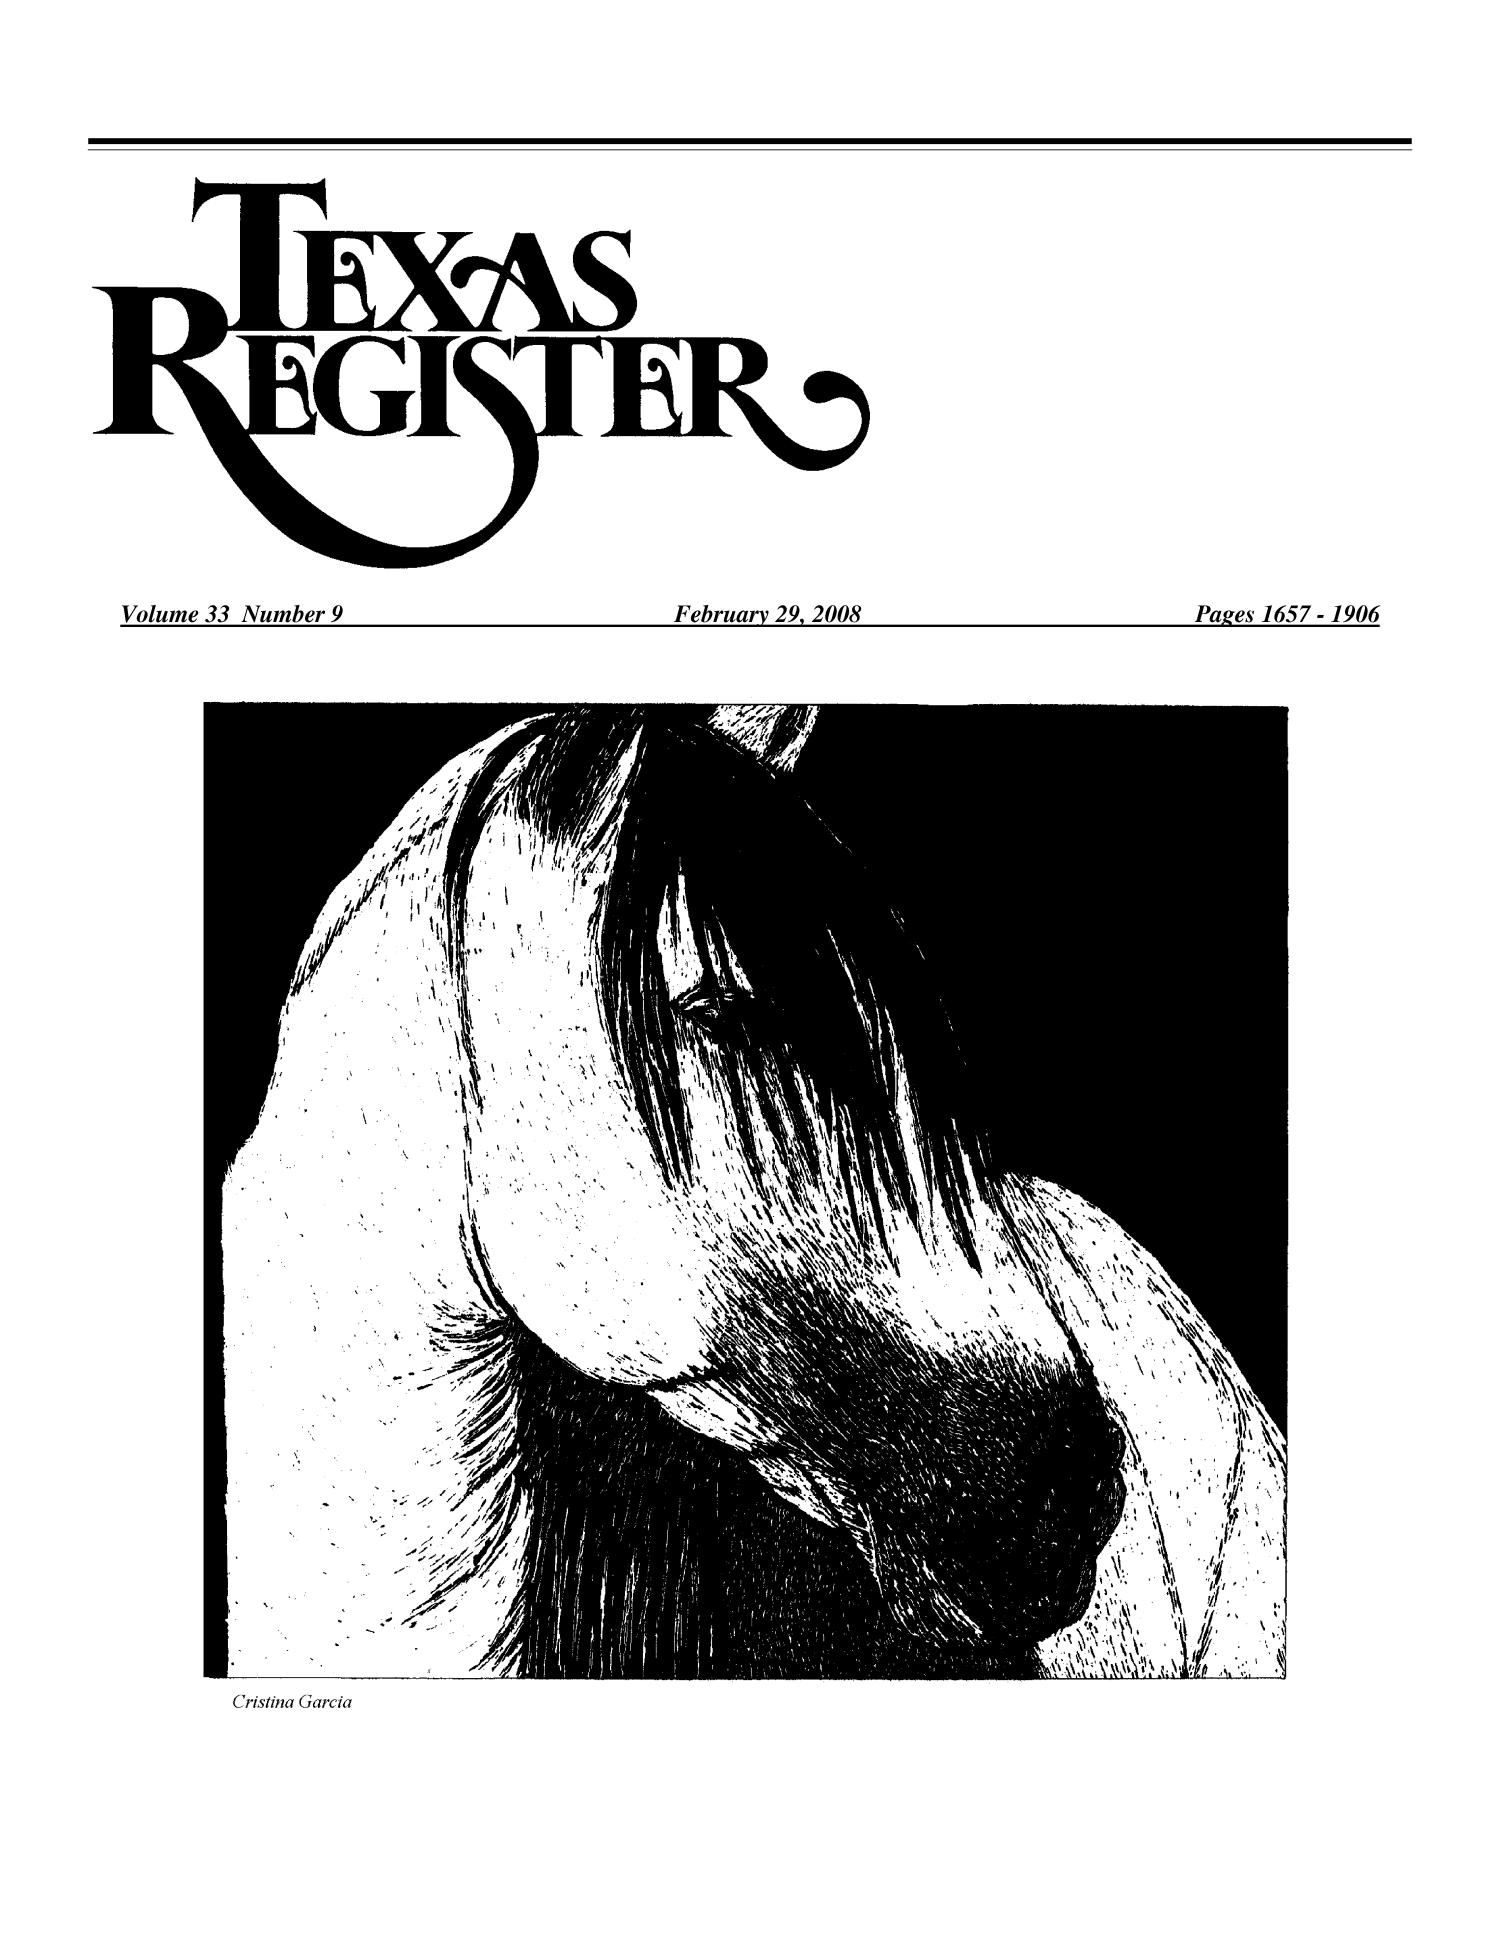 Texas Register, Volume 33, Number 9, Pages 1657-1906, February 29, 2008                                                                                                      1657